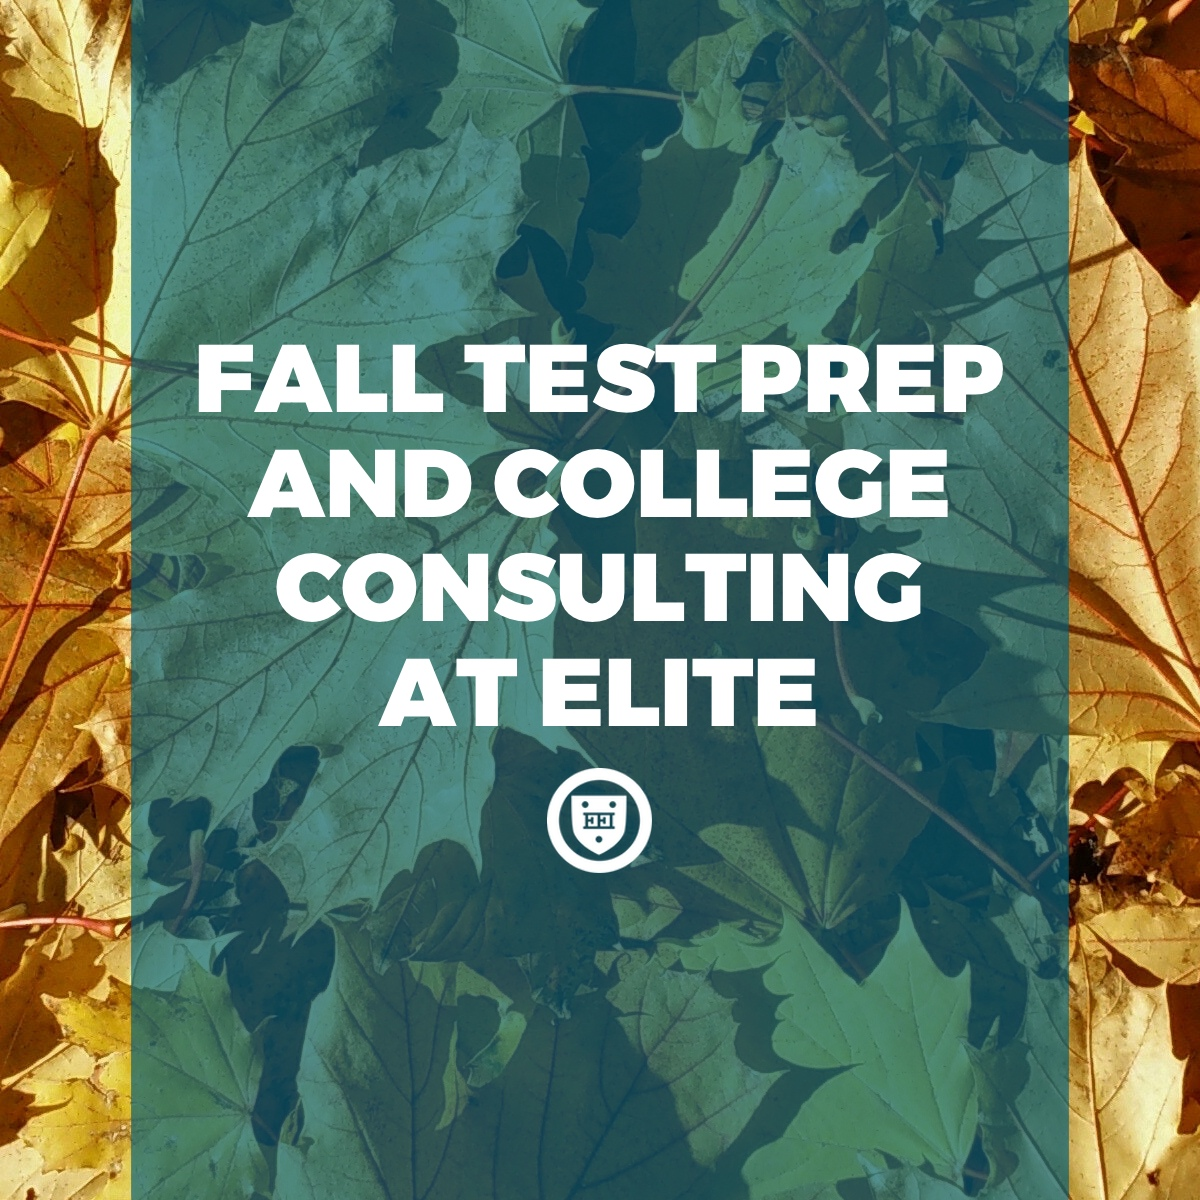 Fall test prep and college consulting at Elite